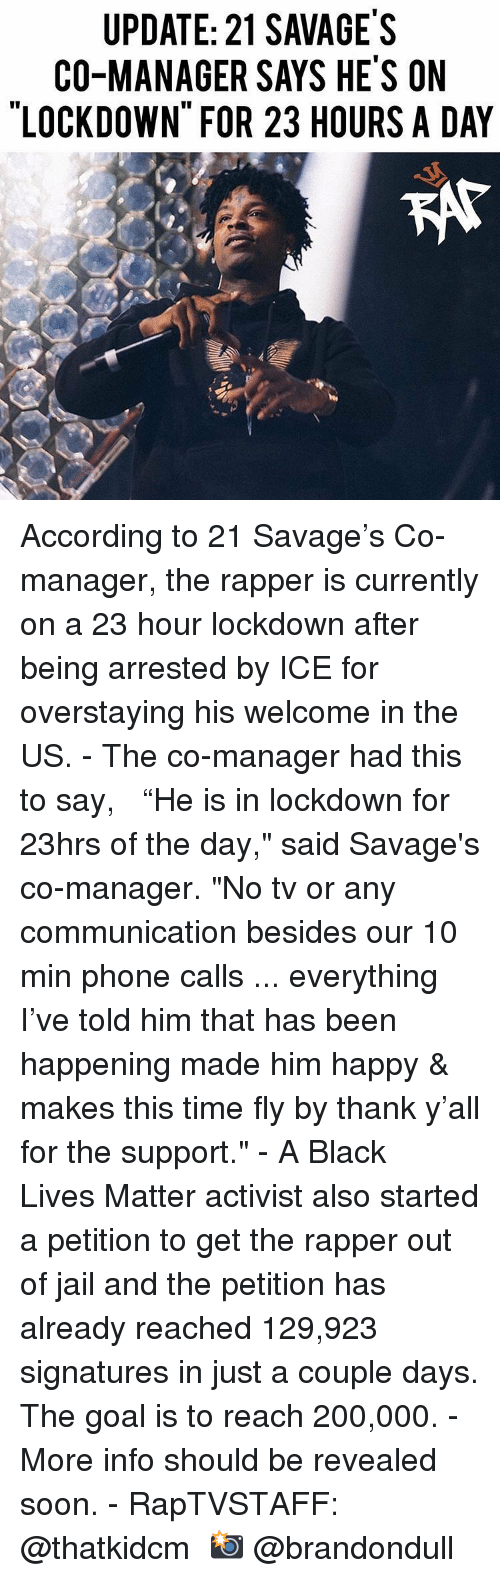 "phone calls: UPDATE: 21 SAVAGE'S  CO-MANAGER SAYS HE'S ON  LOCKDOWN FOR 23 HOURS A DAY  KAt According to 21 Savage's Co-manager, the rapper is currently on a 23 hour lockdown after being arrested by ICE for overstaying his welcome in the US.⁣ -⁣ The co-manager had this to say, ⁣ ⁣ ""He is in lockdown for 23hrs of the day,"" said Savage's co-manager. ""No tv or any communication besides our 10 min phone calls ... everything I've told him that has been happening made him happy & makes this time fly by thank y'all for the support.""⁣ -⁣ A Black Lives Matter activist also started a petition to get the rapper out of jail and the petition has already reached 129,923 signatures in just a couple days. The goal is to reach 200,000.⁣ -⁣ More info should be revealed soon.⁣ -⁣ RapTVSTAFF: @thatkidcm⁣ 📸 @brandondull"